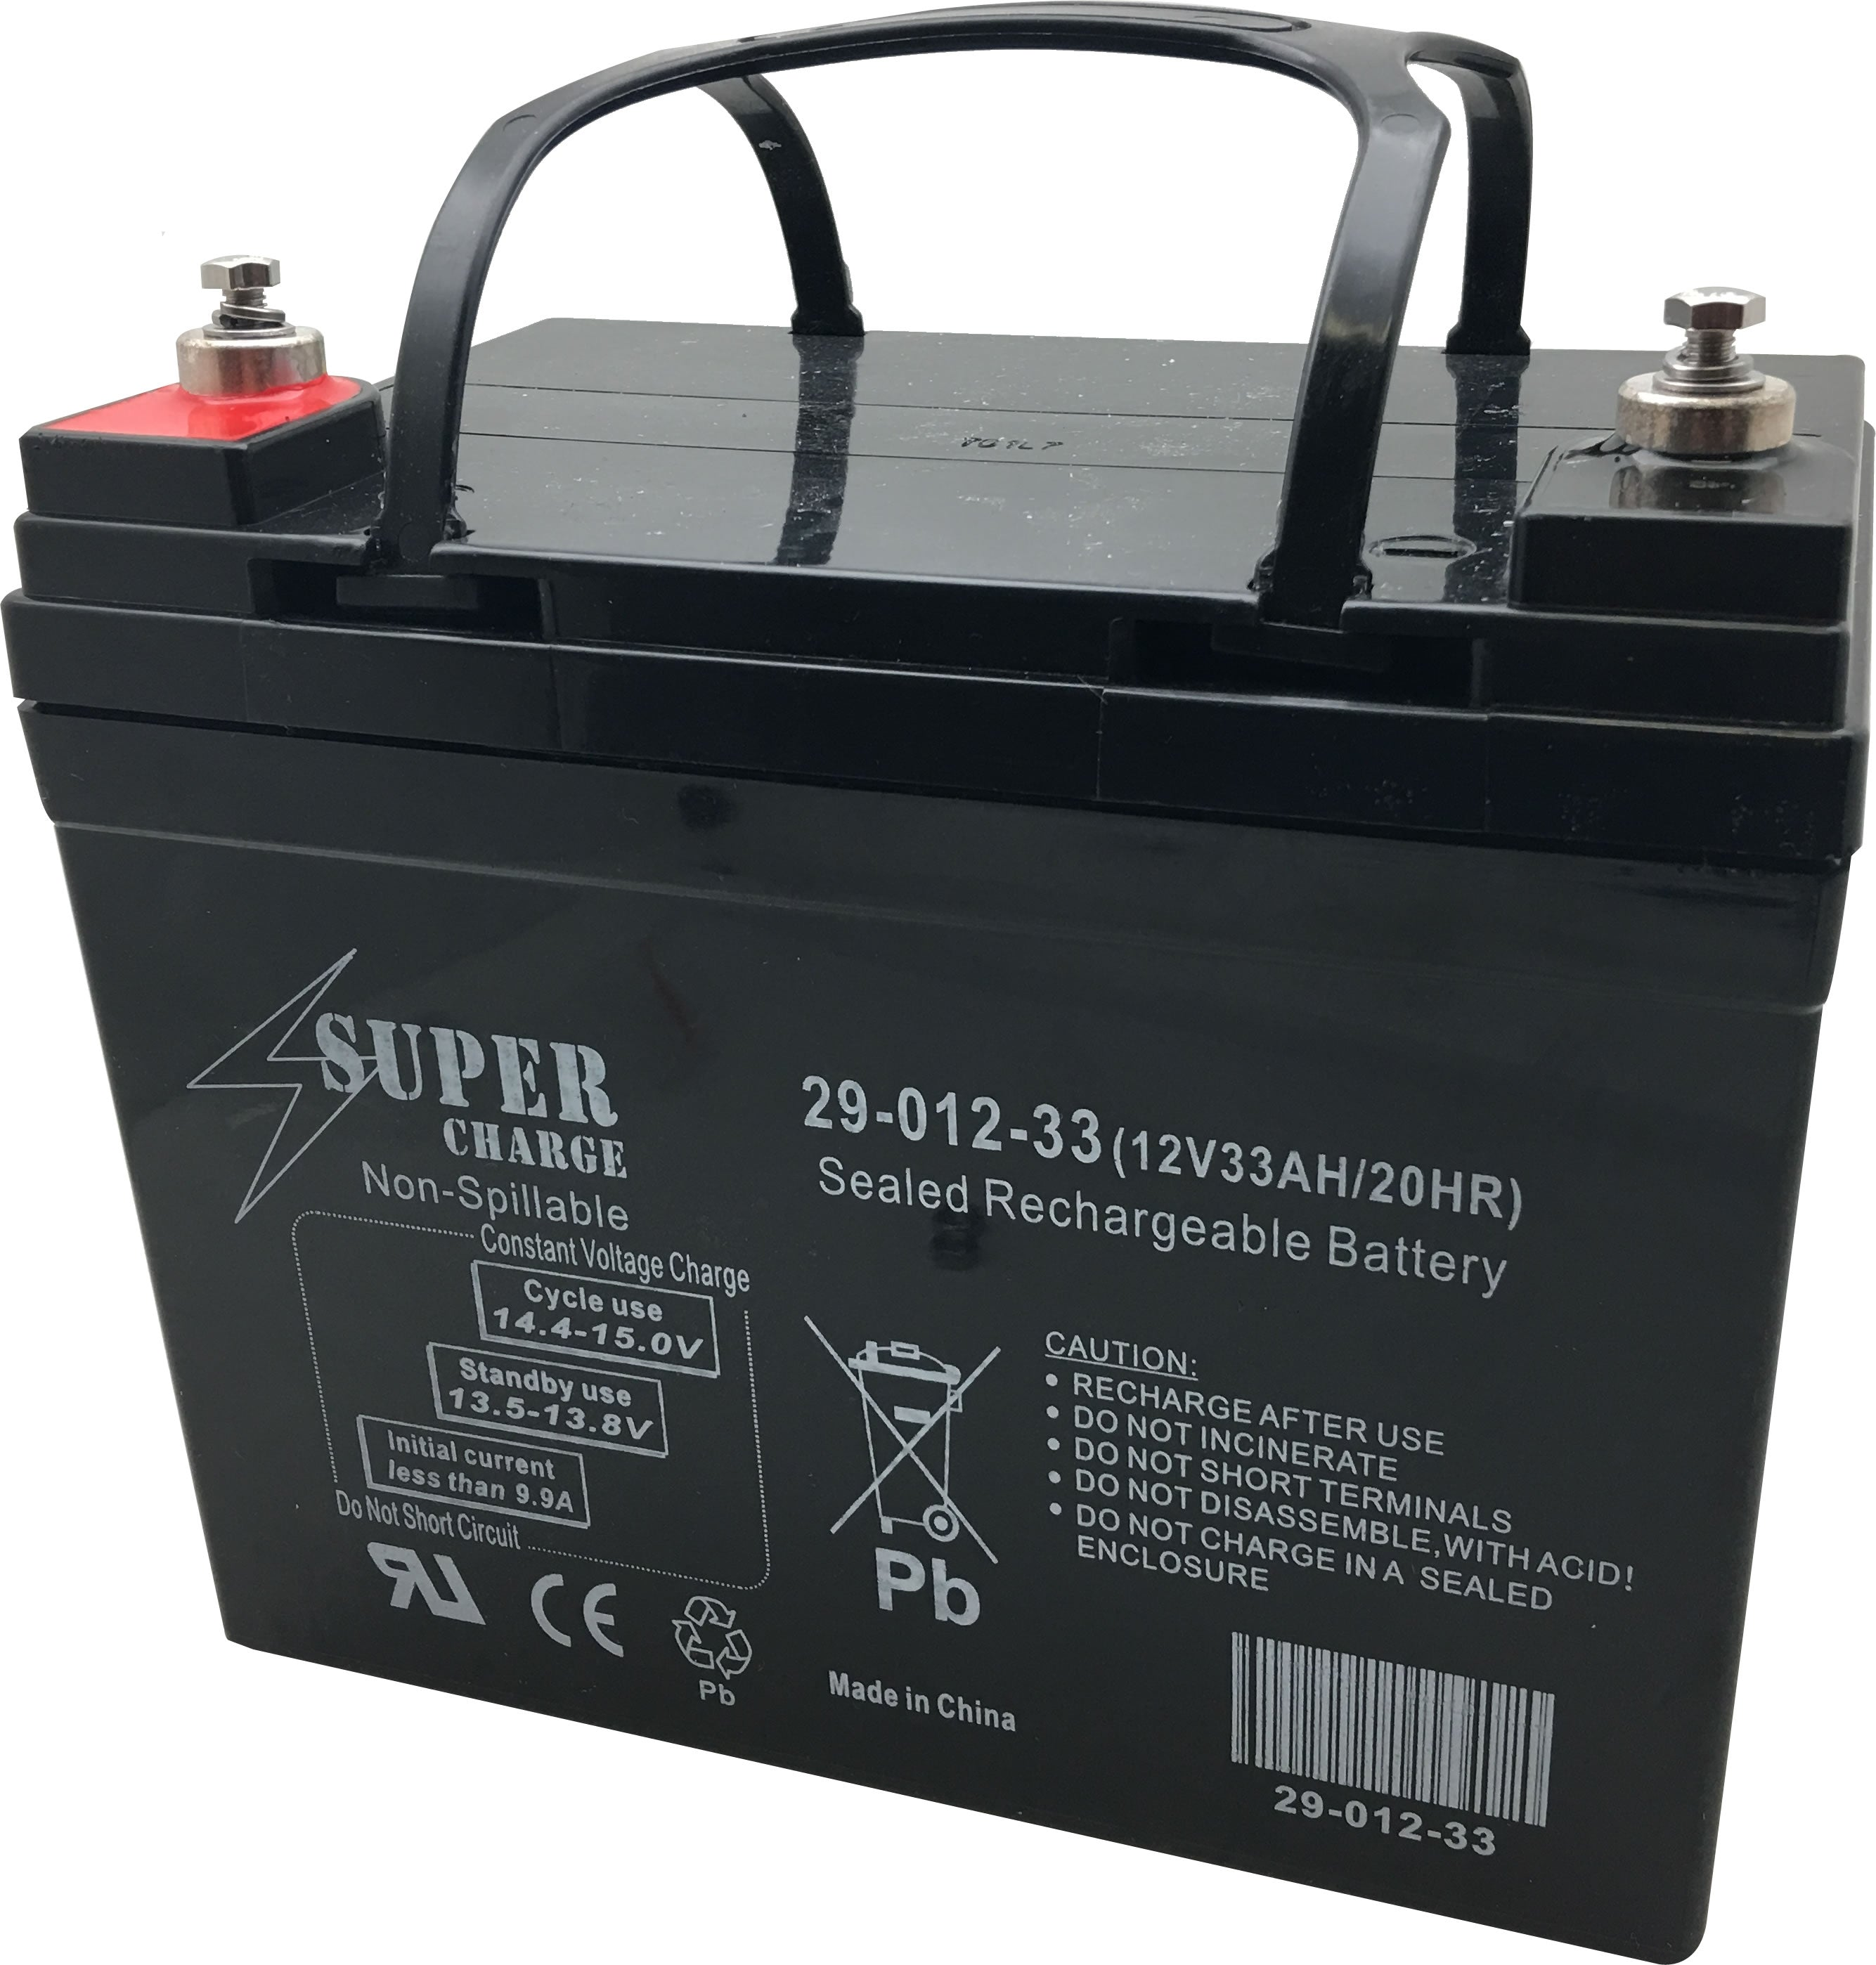 29-012-33 Rechargeable Battery 12V 33AH 20HR